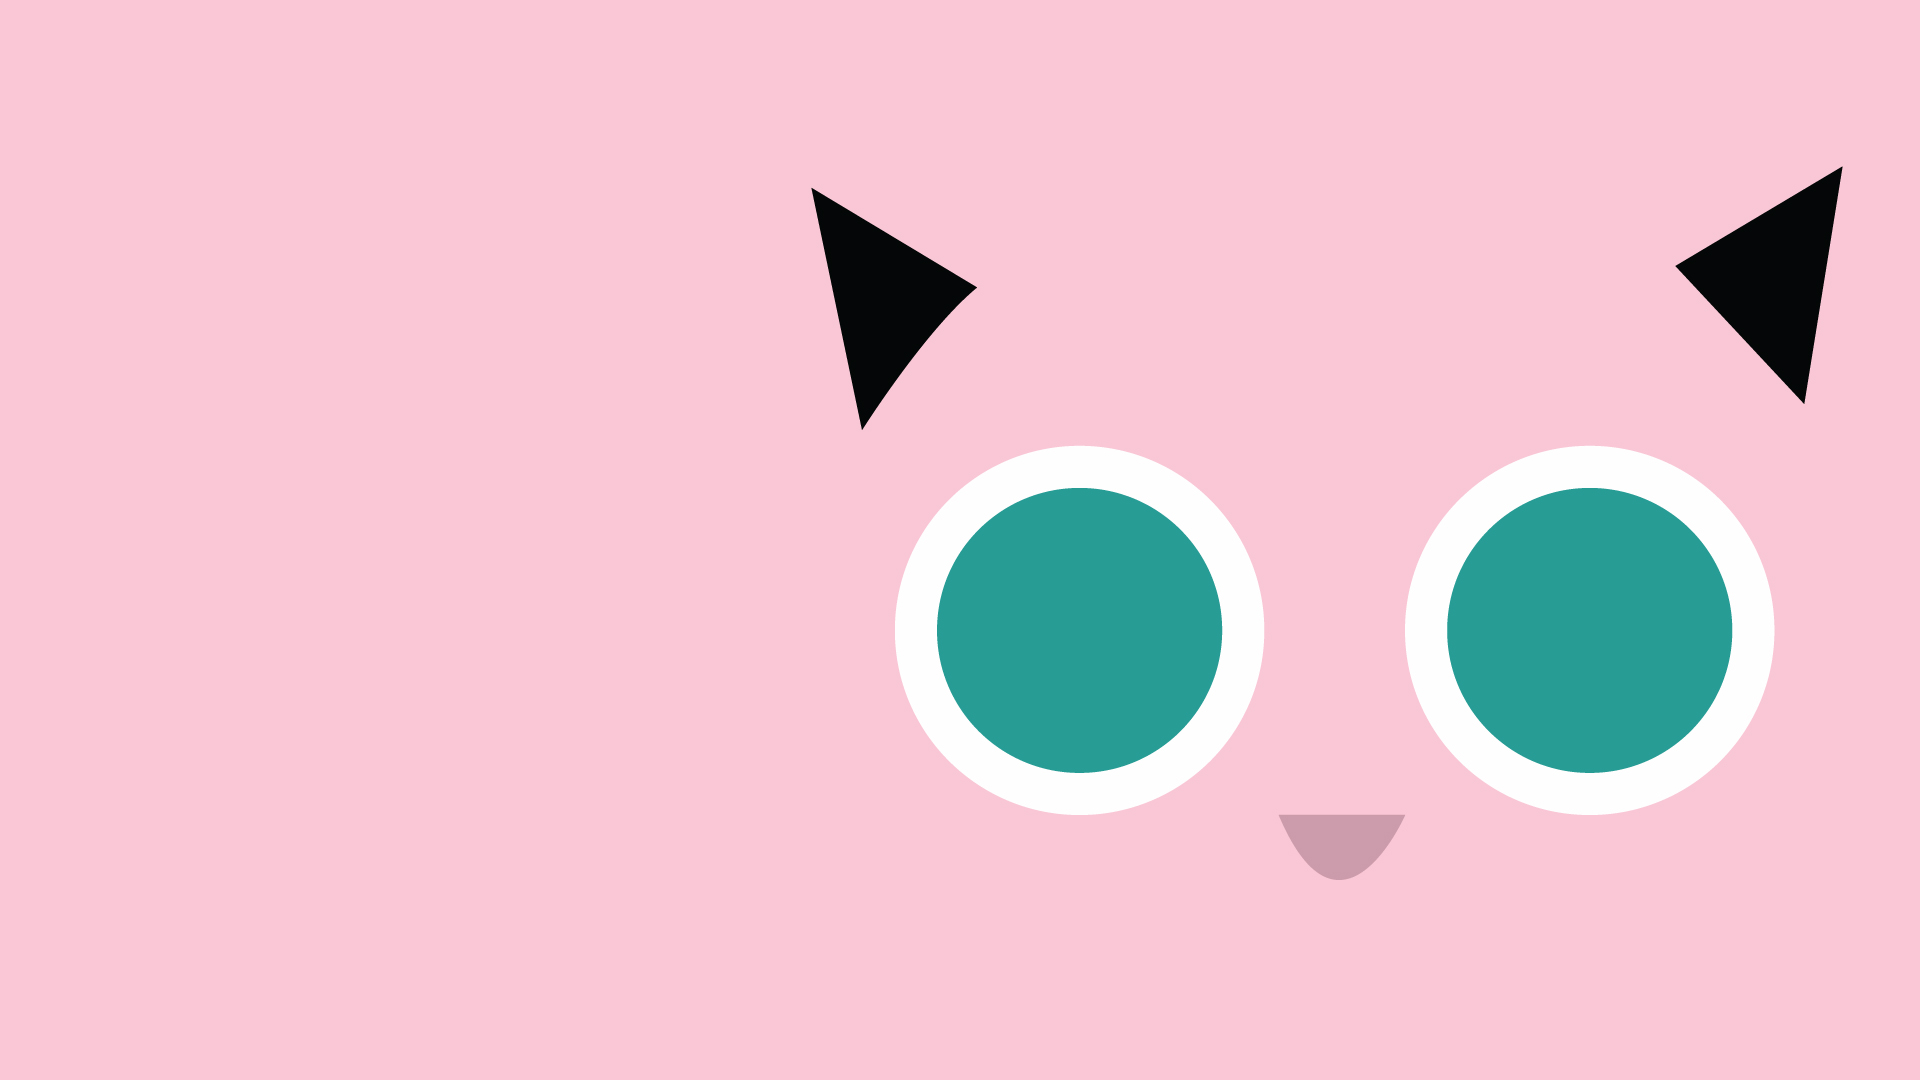 039 Jigglypuff Art Sprites Amp Wallpapers Spritedex Pok 233 Dex Pldh Net